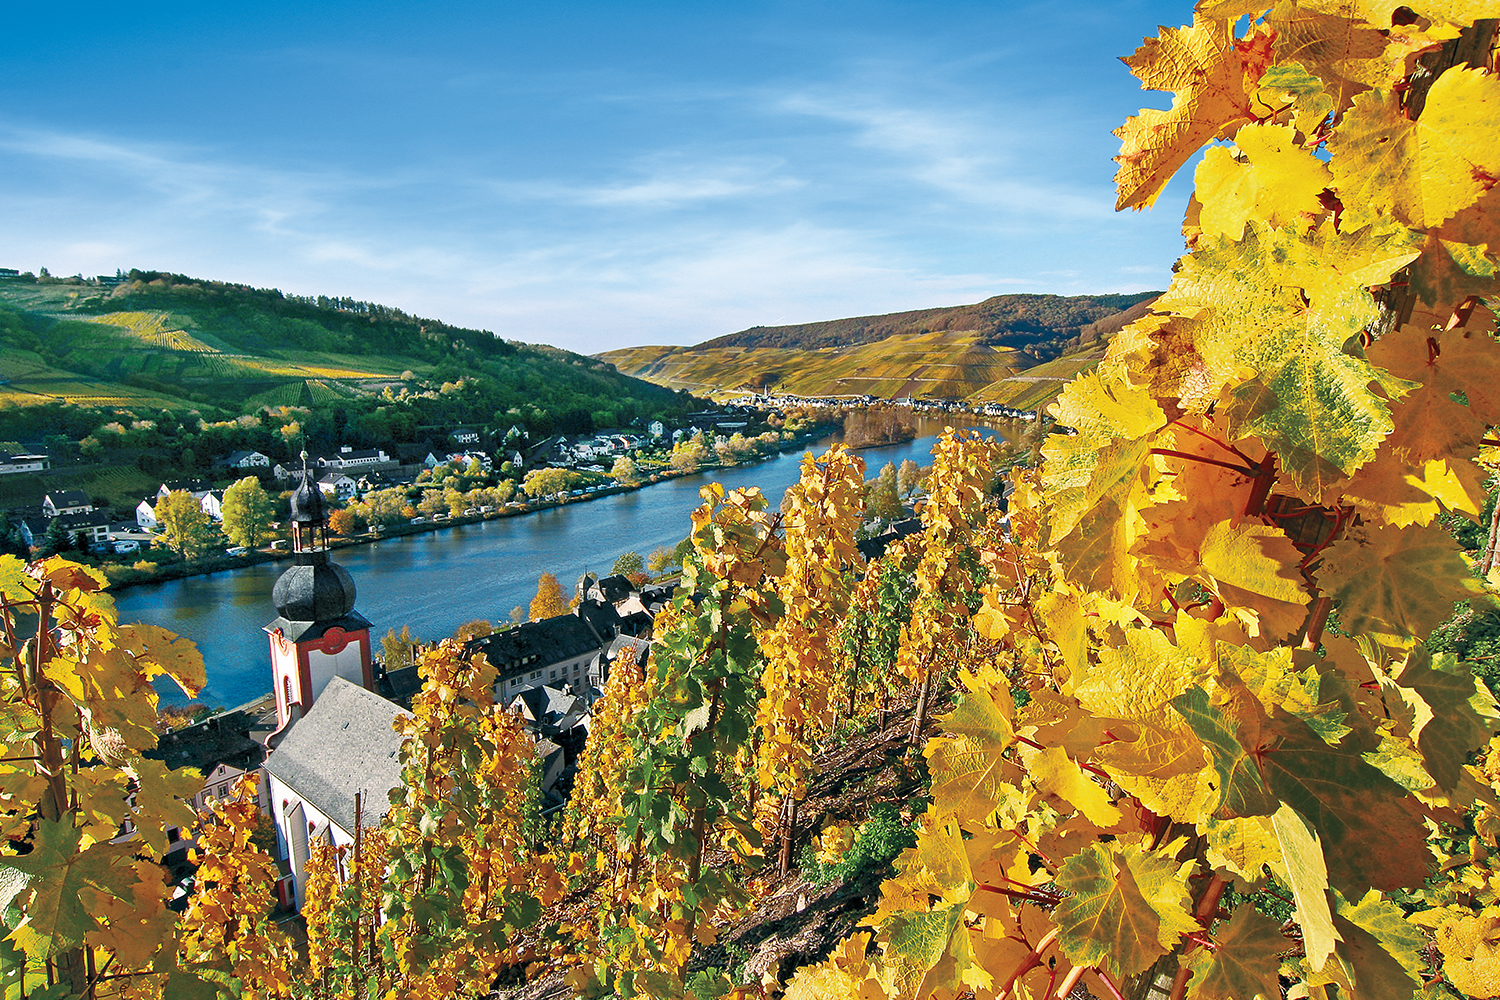 The Mosel, Main and Rhine